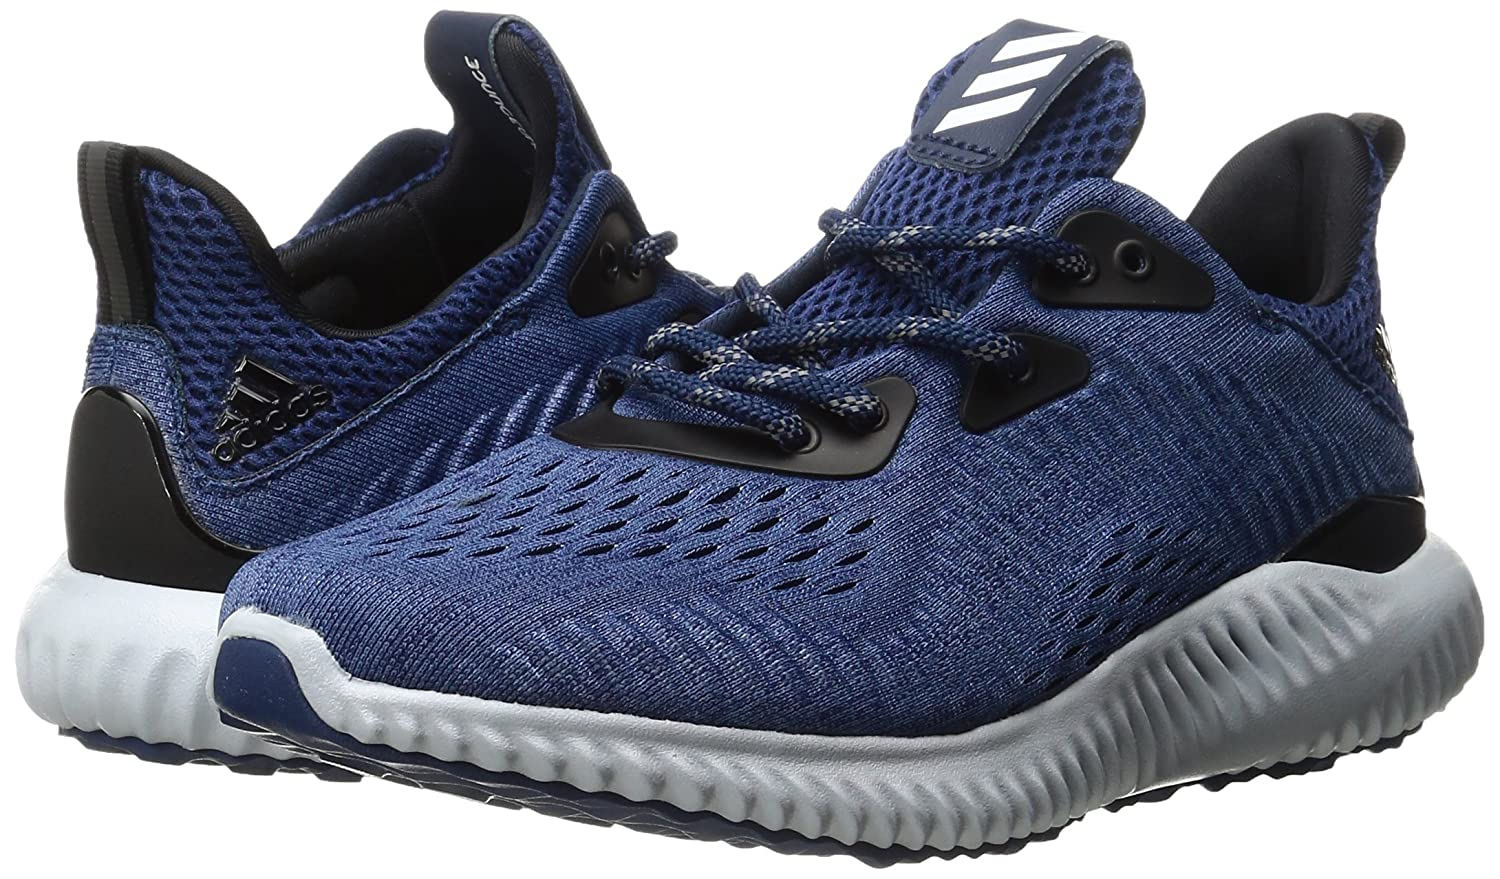 adidas Women's Alphabounce Em W Running Shoe B01H7WMEEI 11.5 B(M) US|Collegiate Navy/Utility Black/Mystery Blue